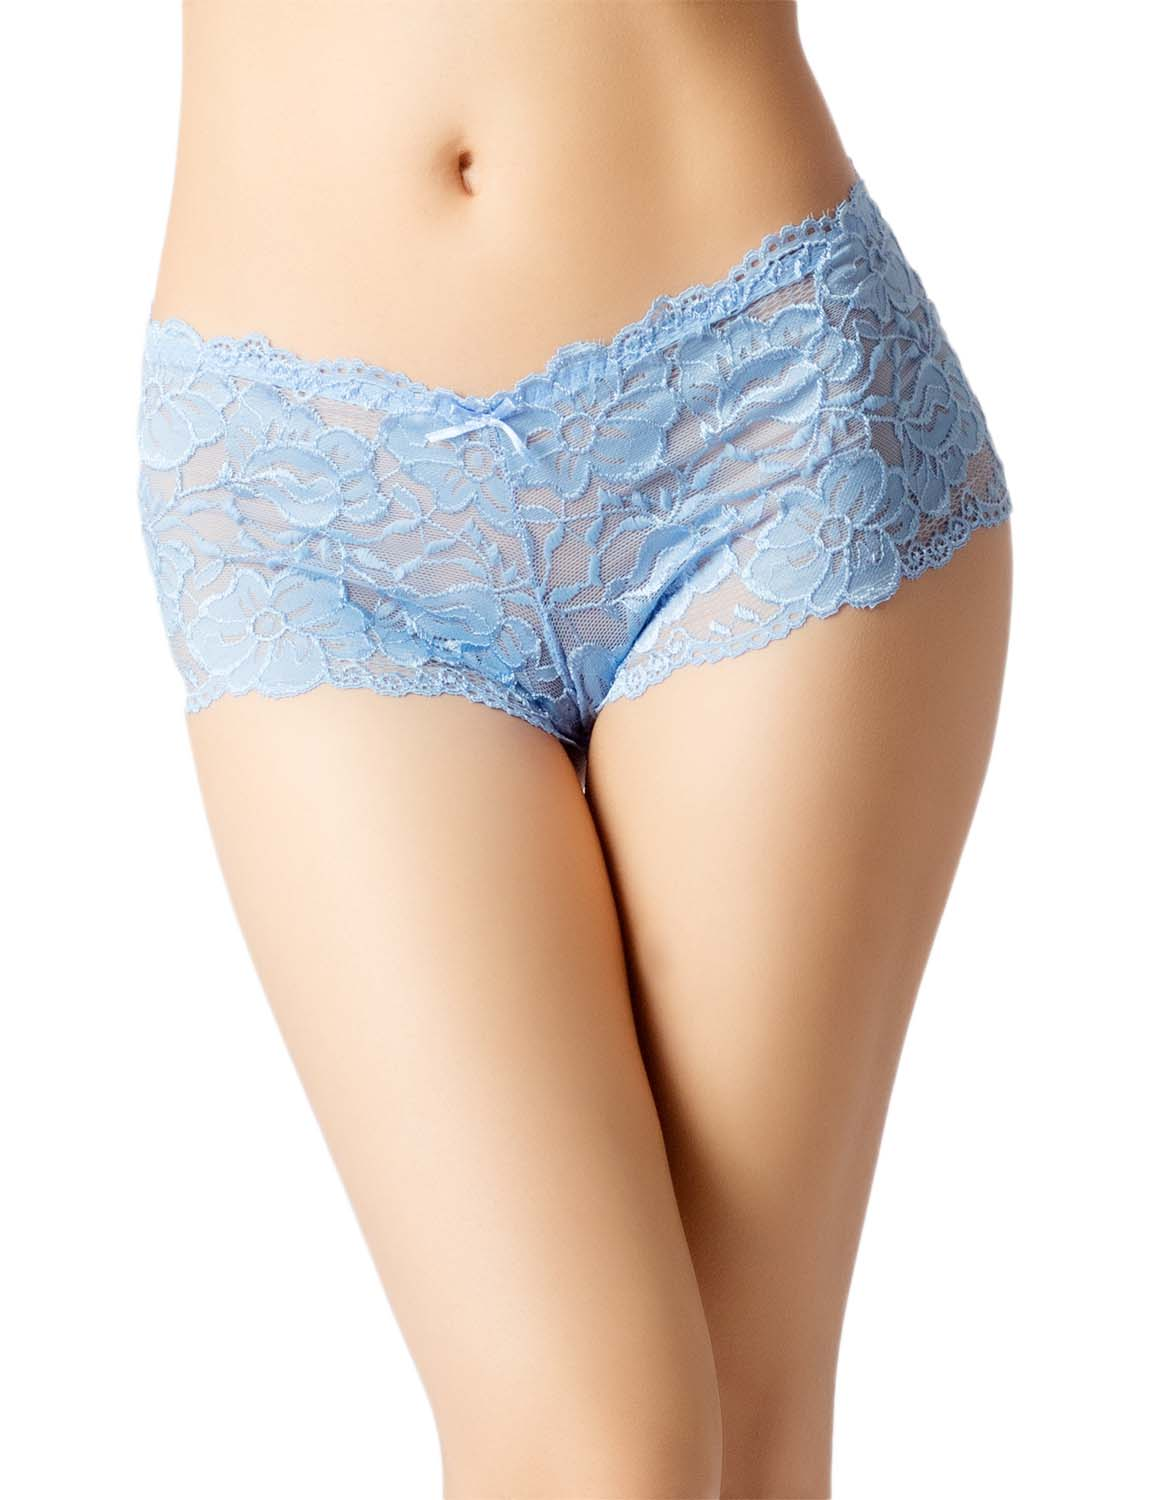 Women's Lace Mesh See-Through Breathable Underwear Low Rise Hipster Panty, Size: 2XL, Turquoise